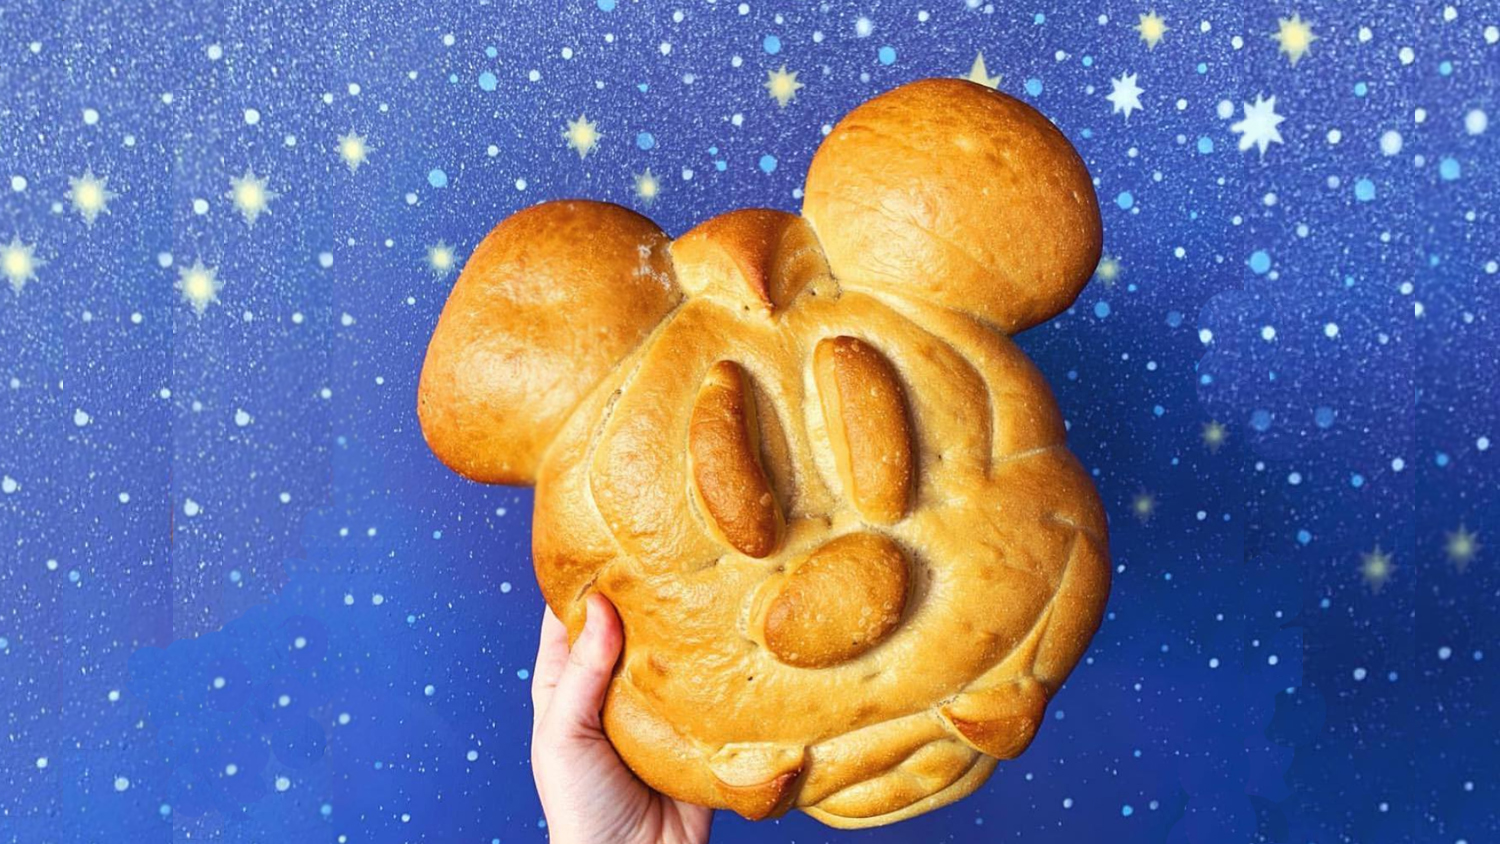 It's Official: Disneyland Is a Vegan Paradise